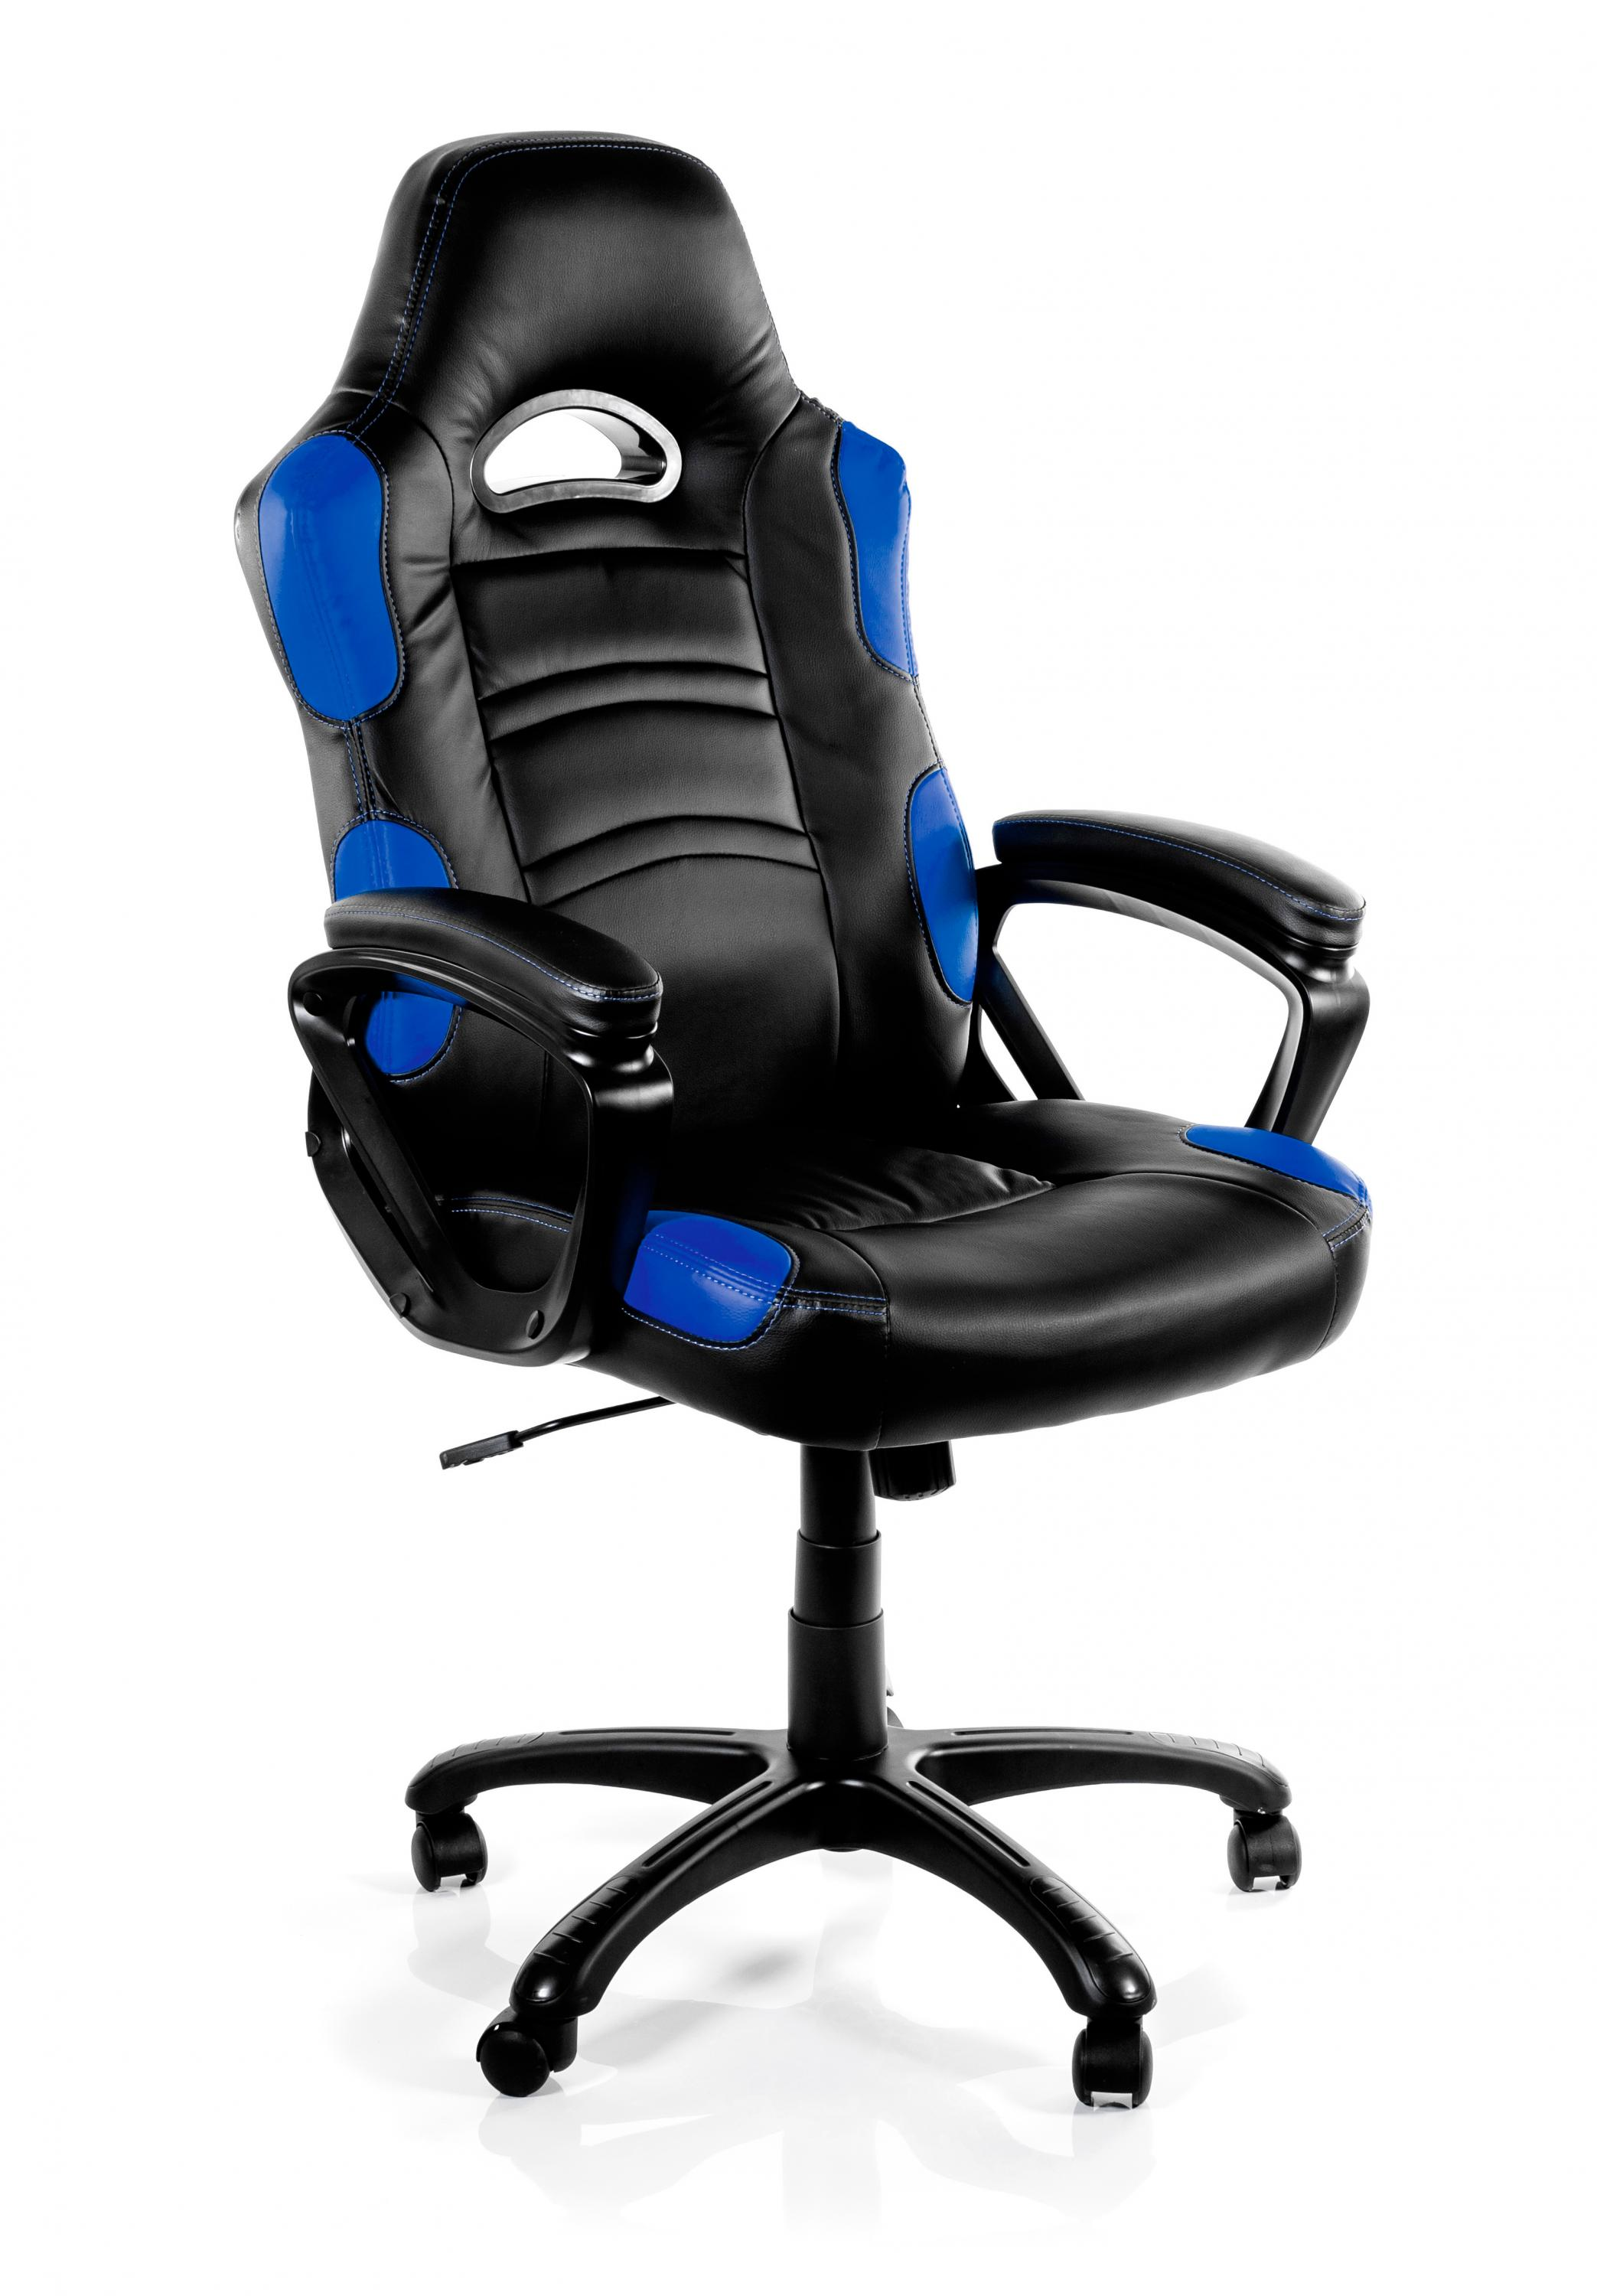 Gamer Chairs 10 Best Pc Gaming Chairs In 2015 Gamers Decide